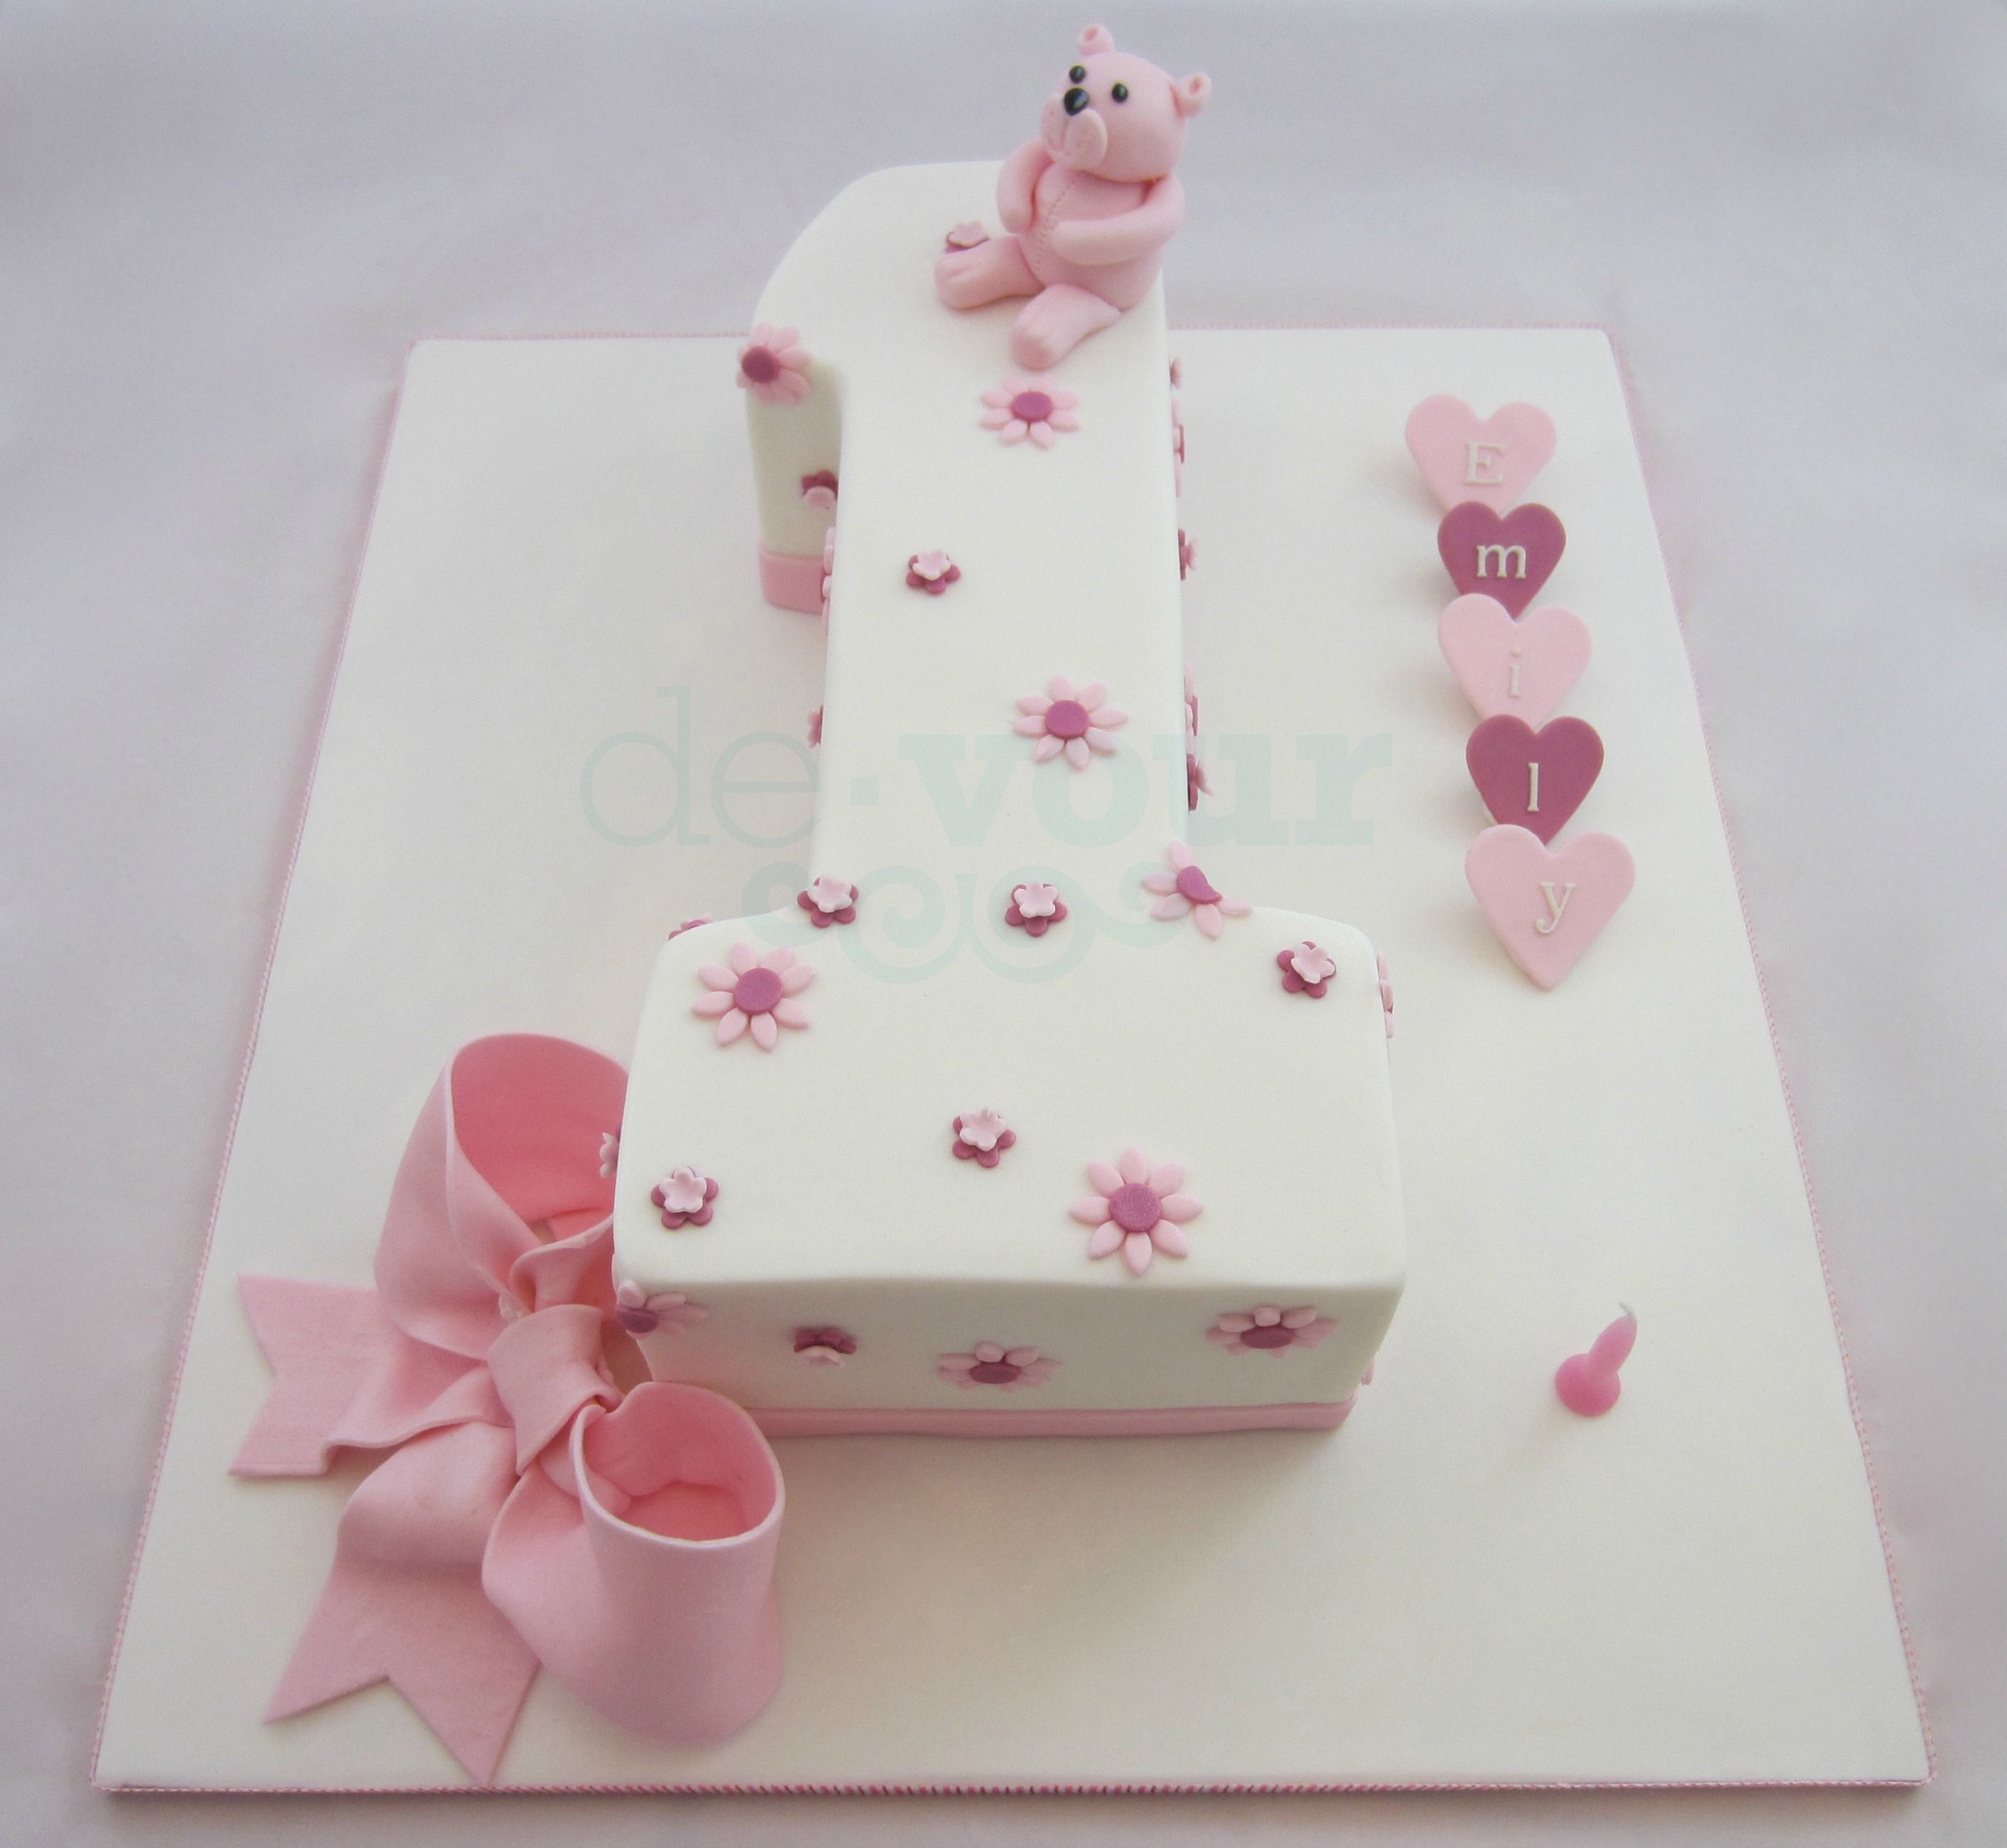 Cake Design On Pinterest : Number 1 cake, first birthday cake, number one cake, girl ...